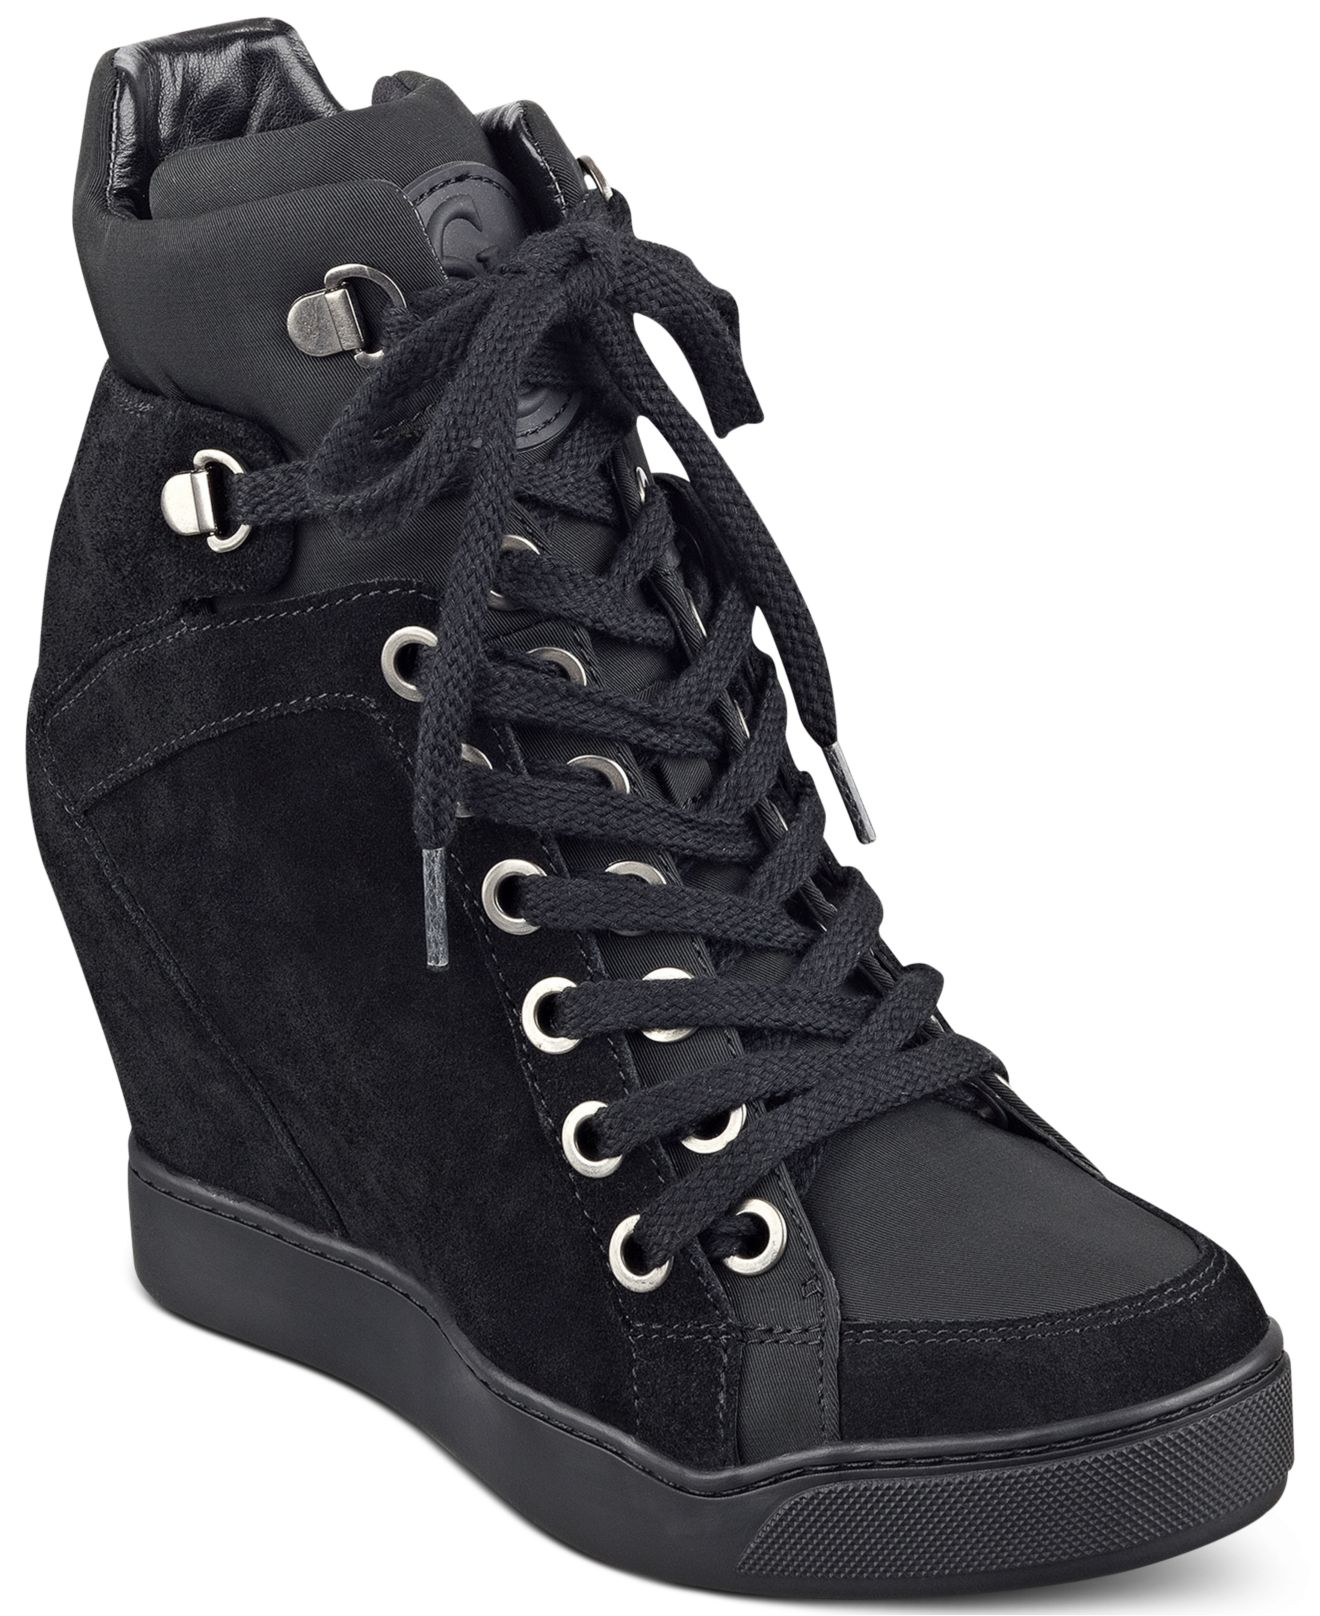 Guess Women's Matty Wedge Sneakers in Black | Lyst